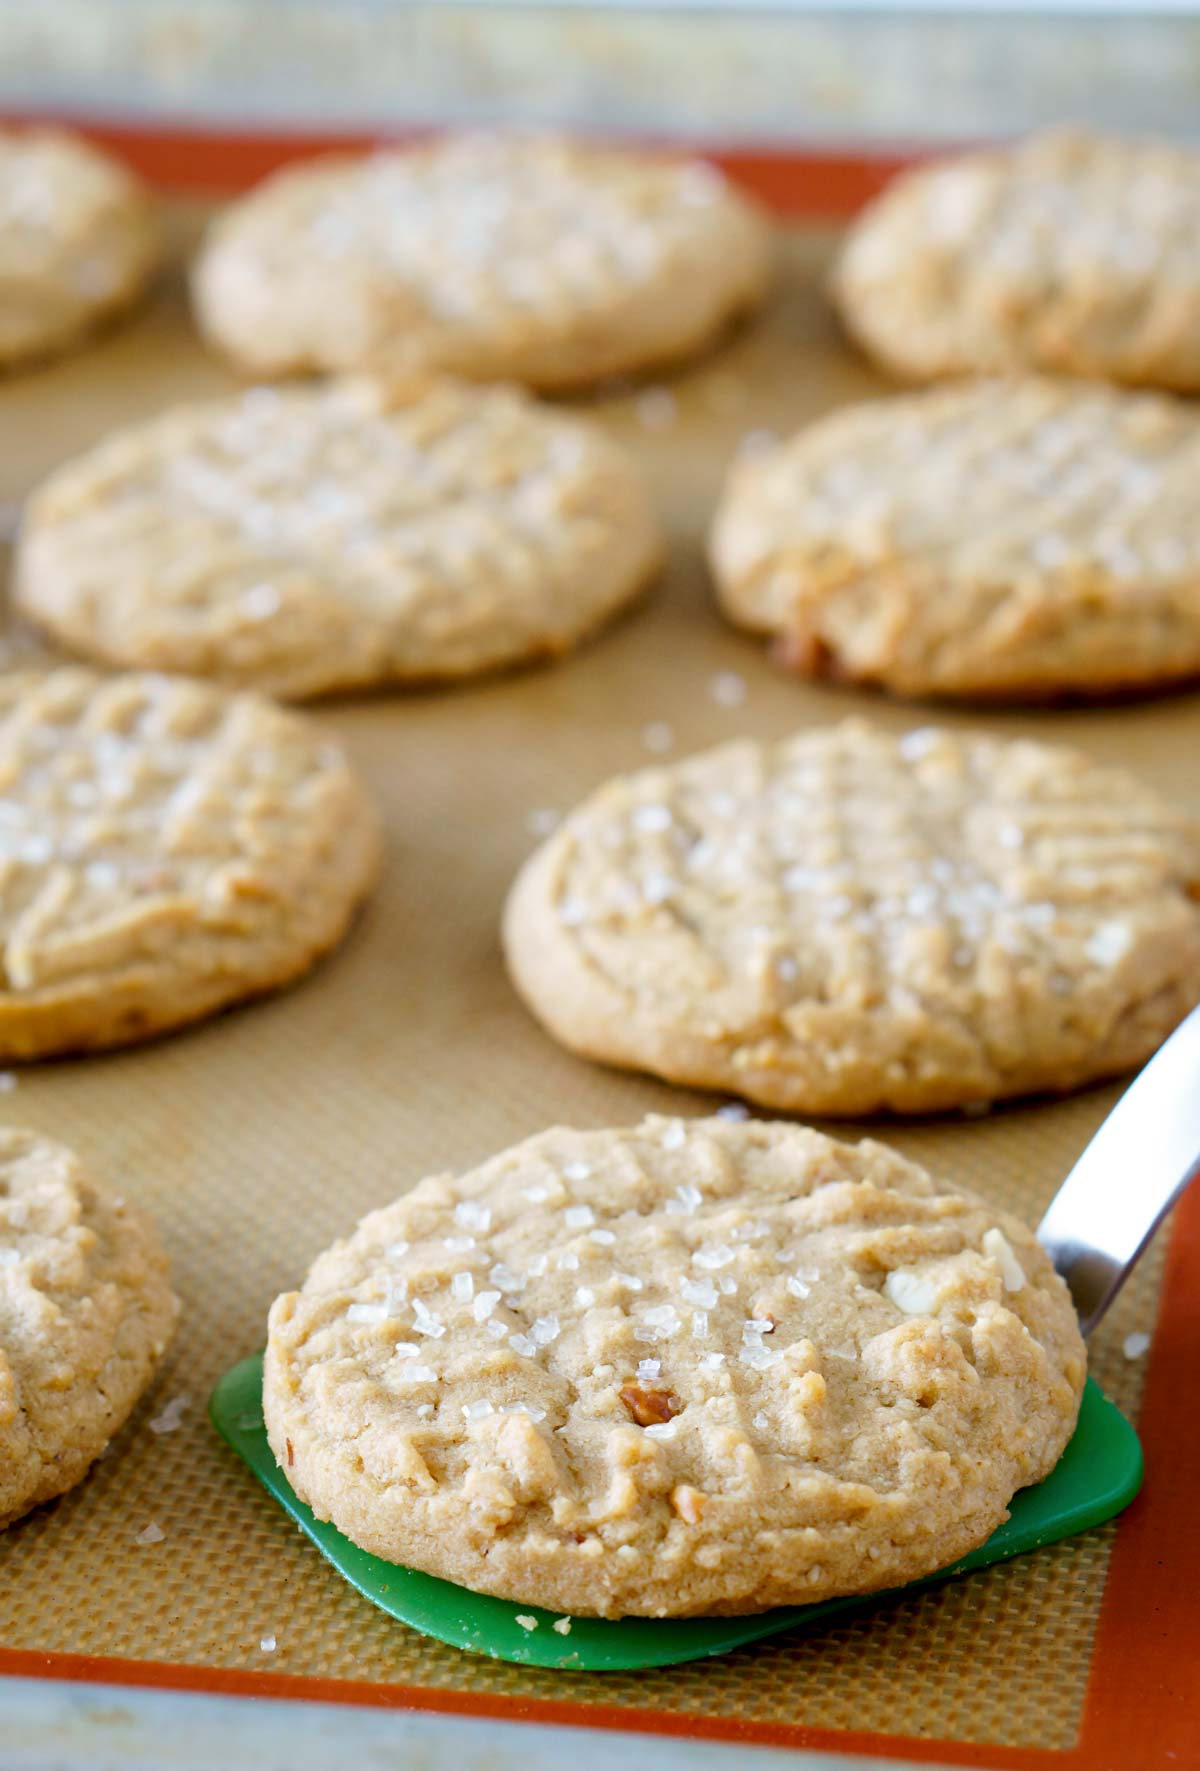 Crisscrossed Peanut Butter Cookies